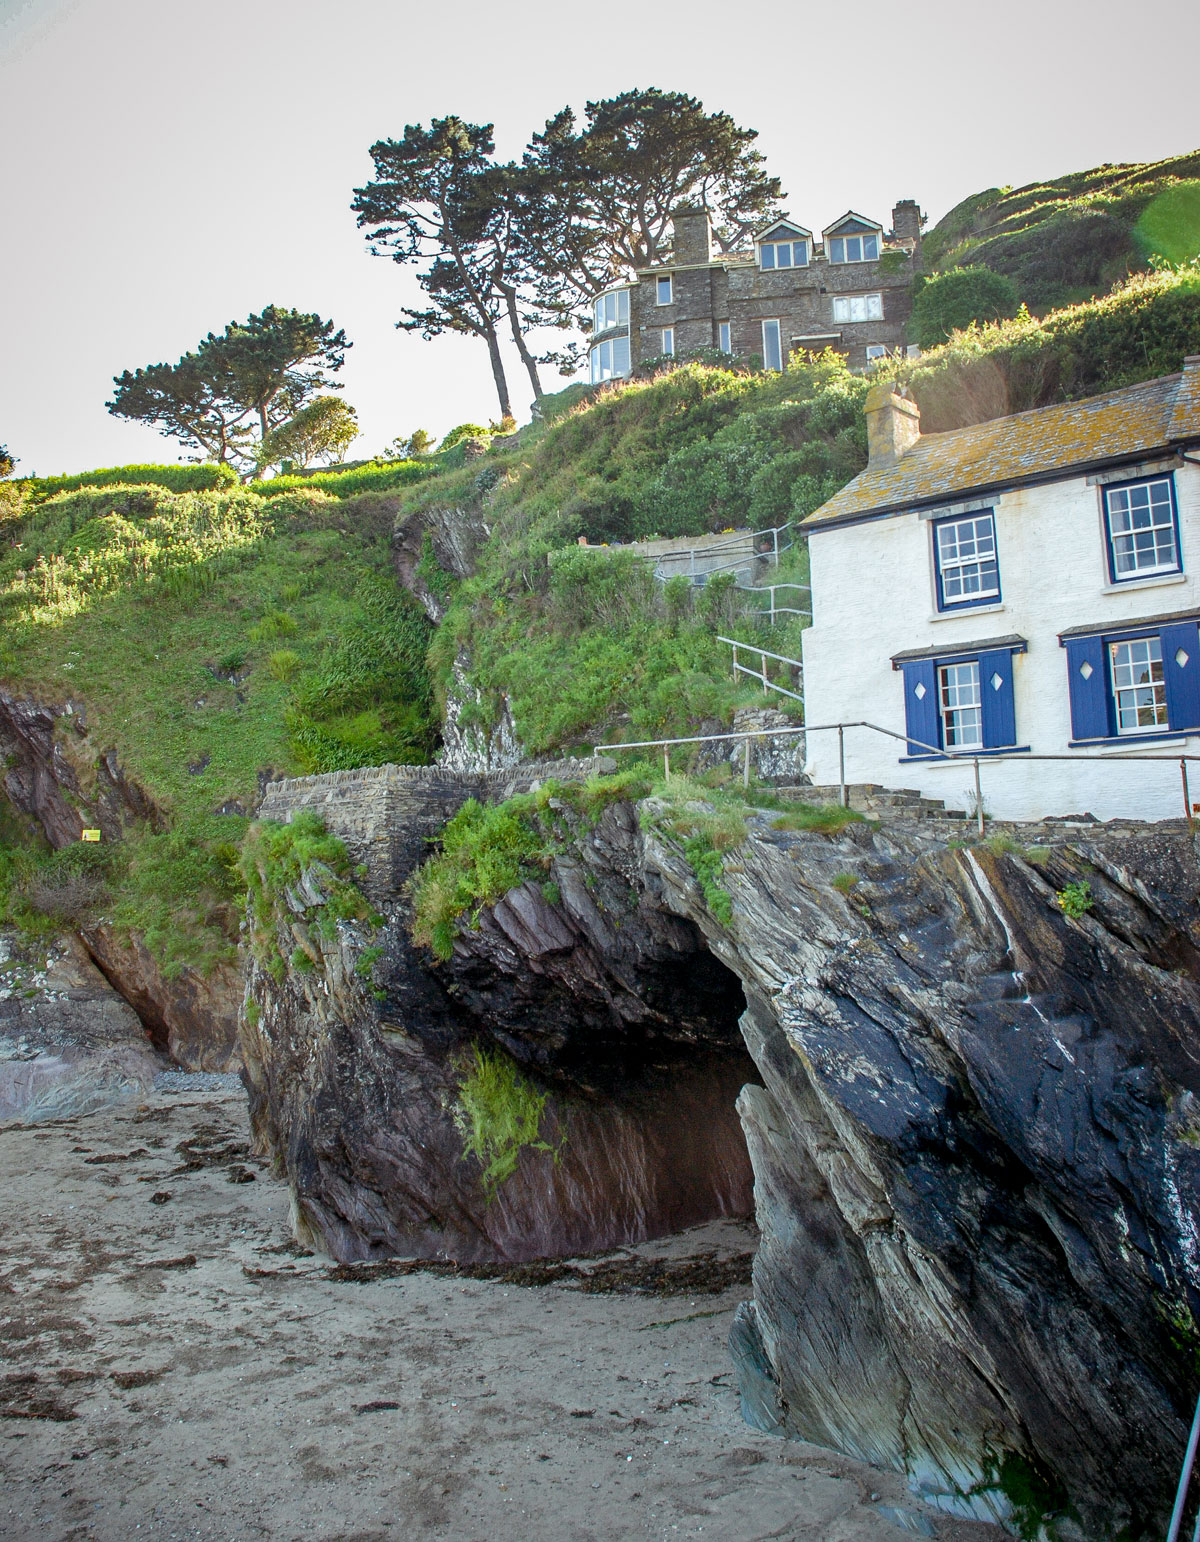 Willy-Wilcox-cave---Smugglers---Polperro-Cornwall-England